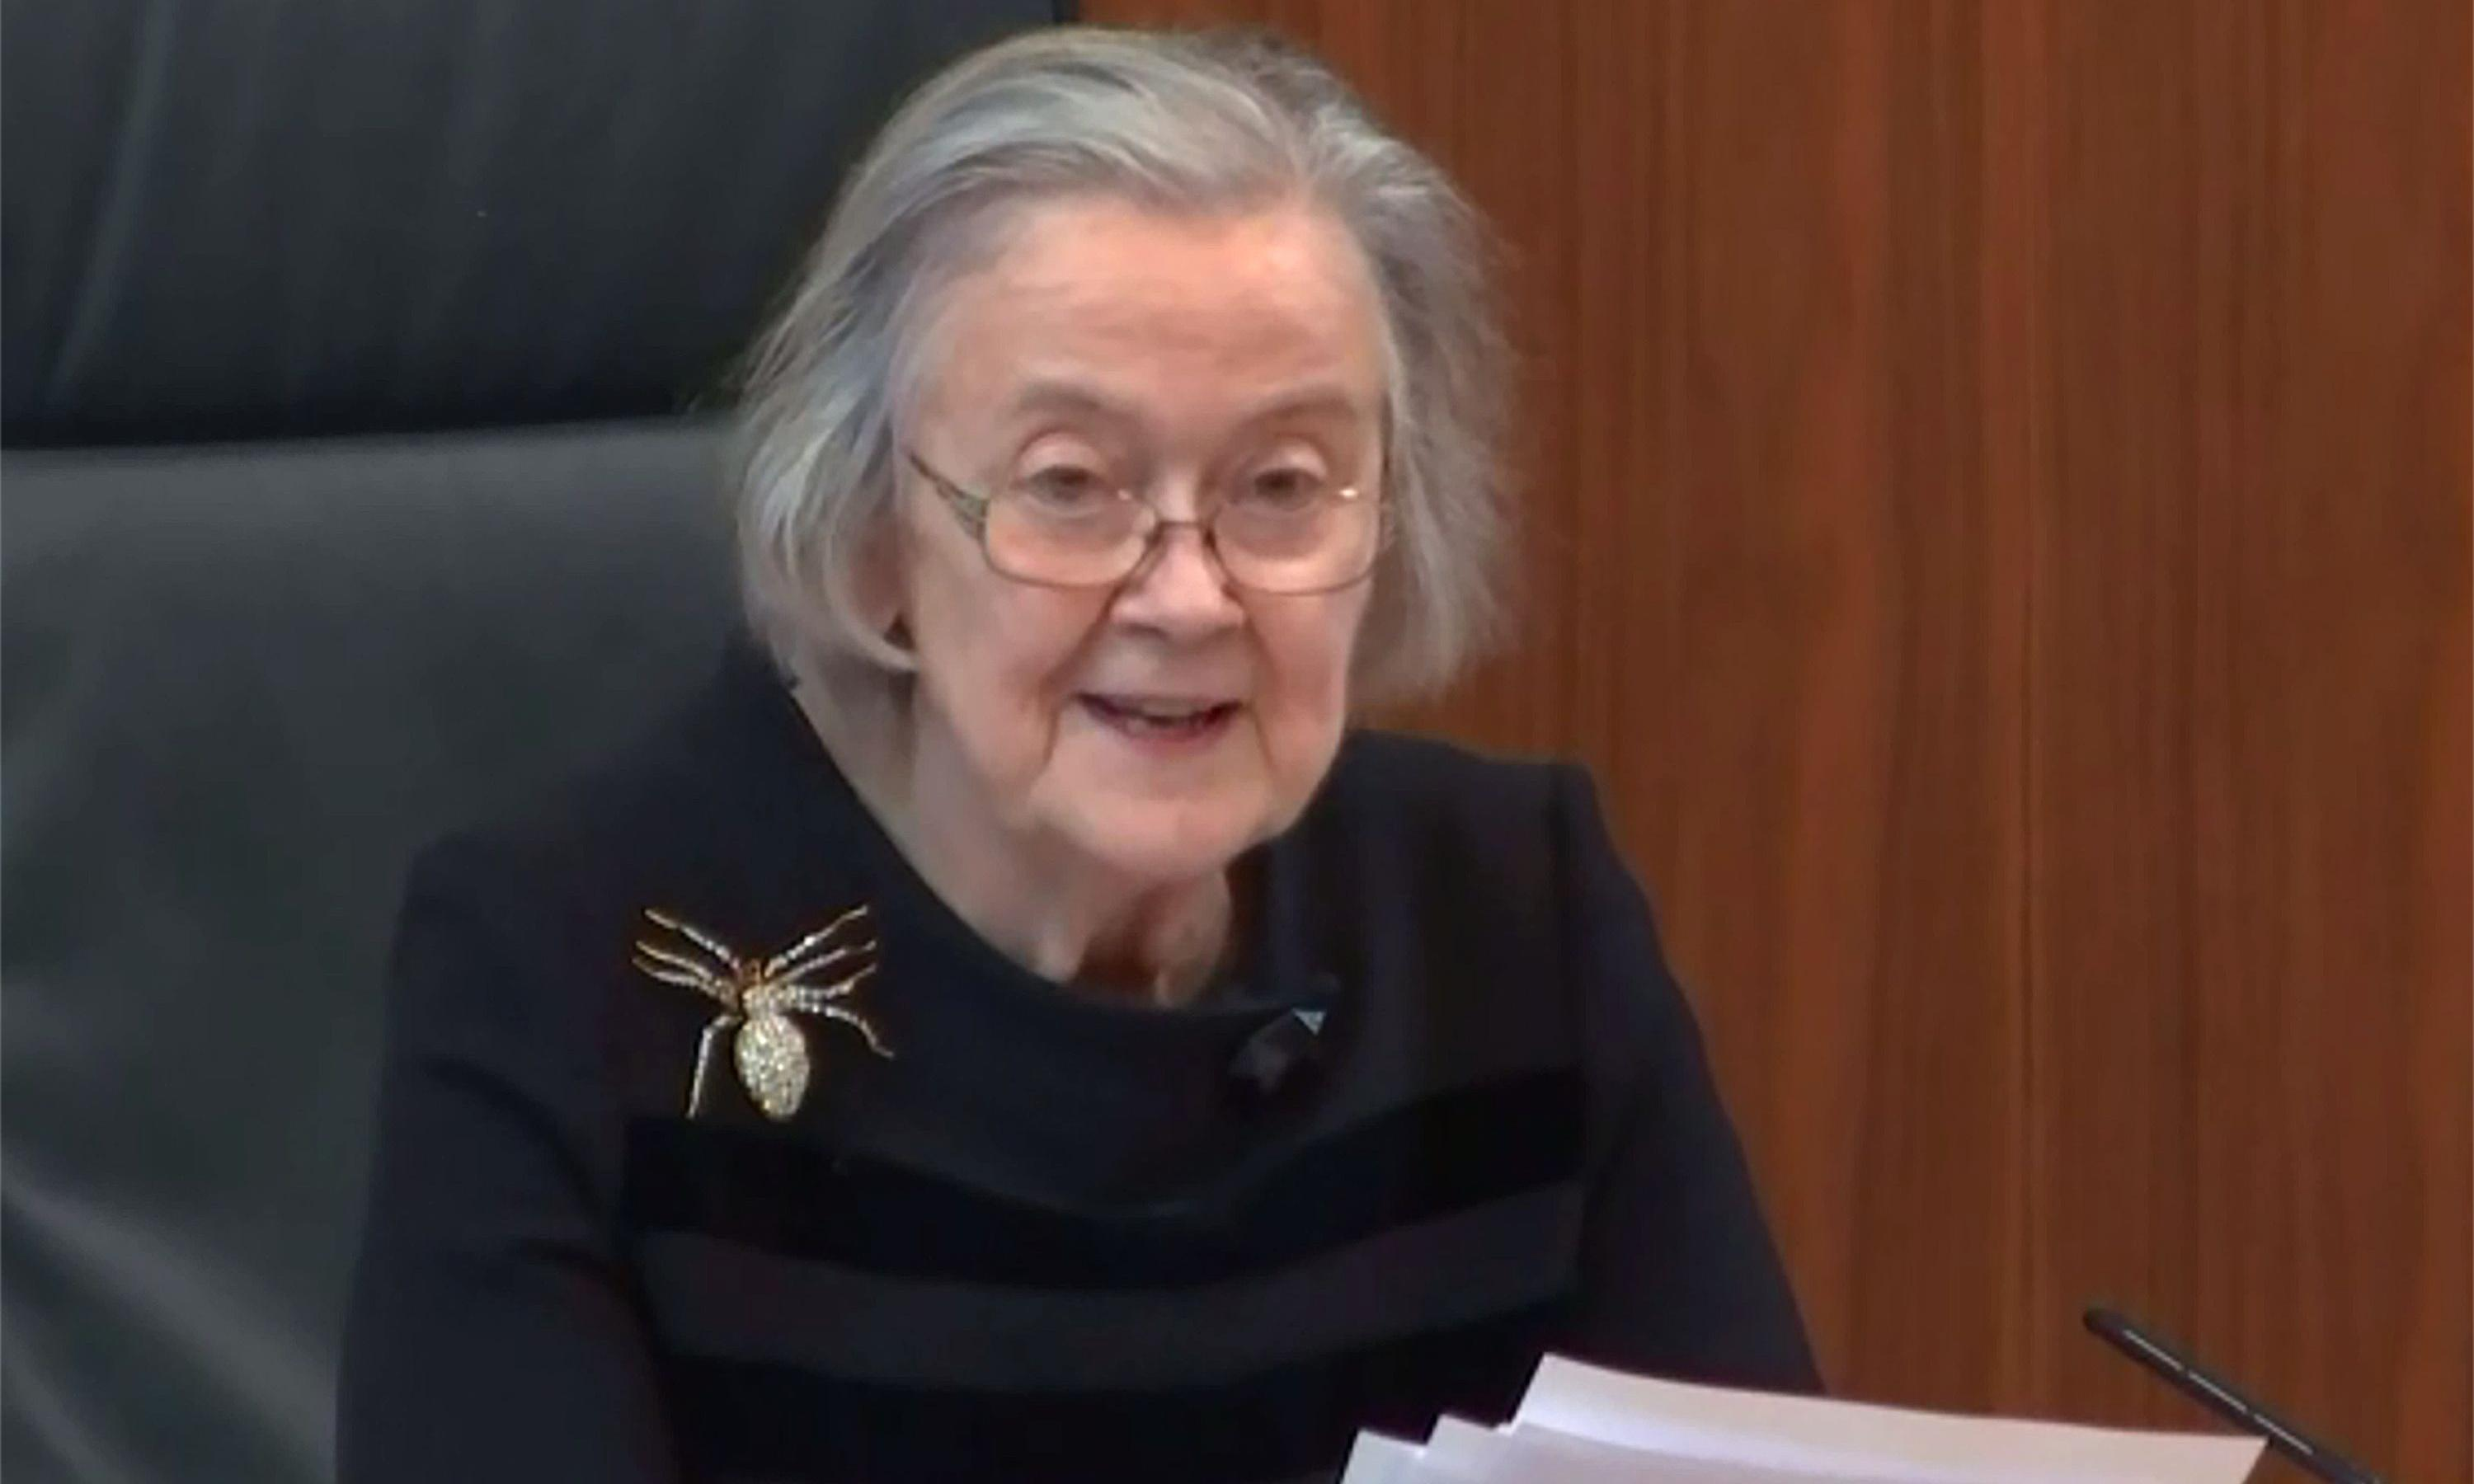 How Lady Hale's giant spider brooch sent the web into a spin